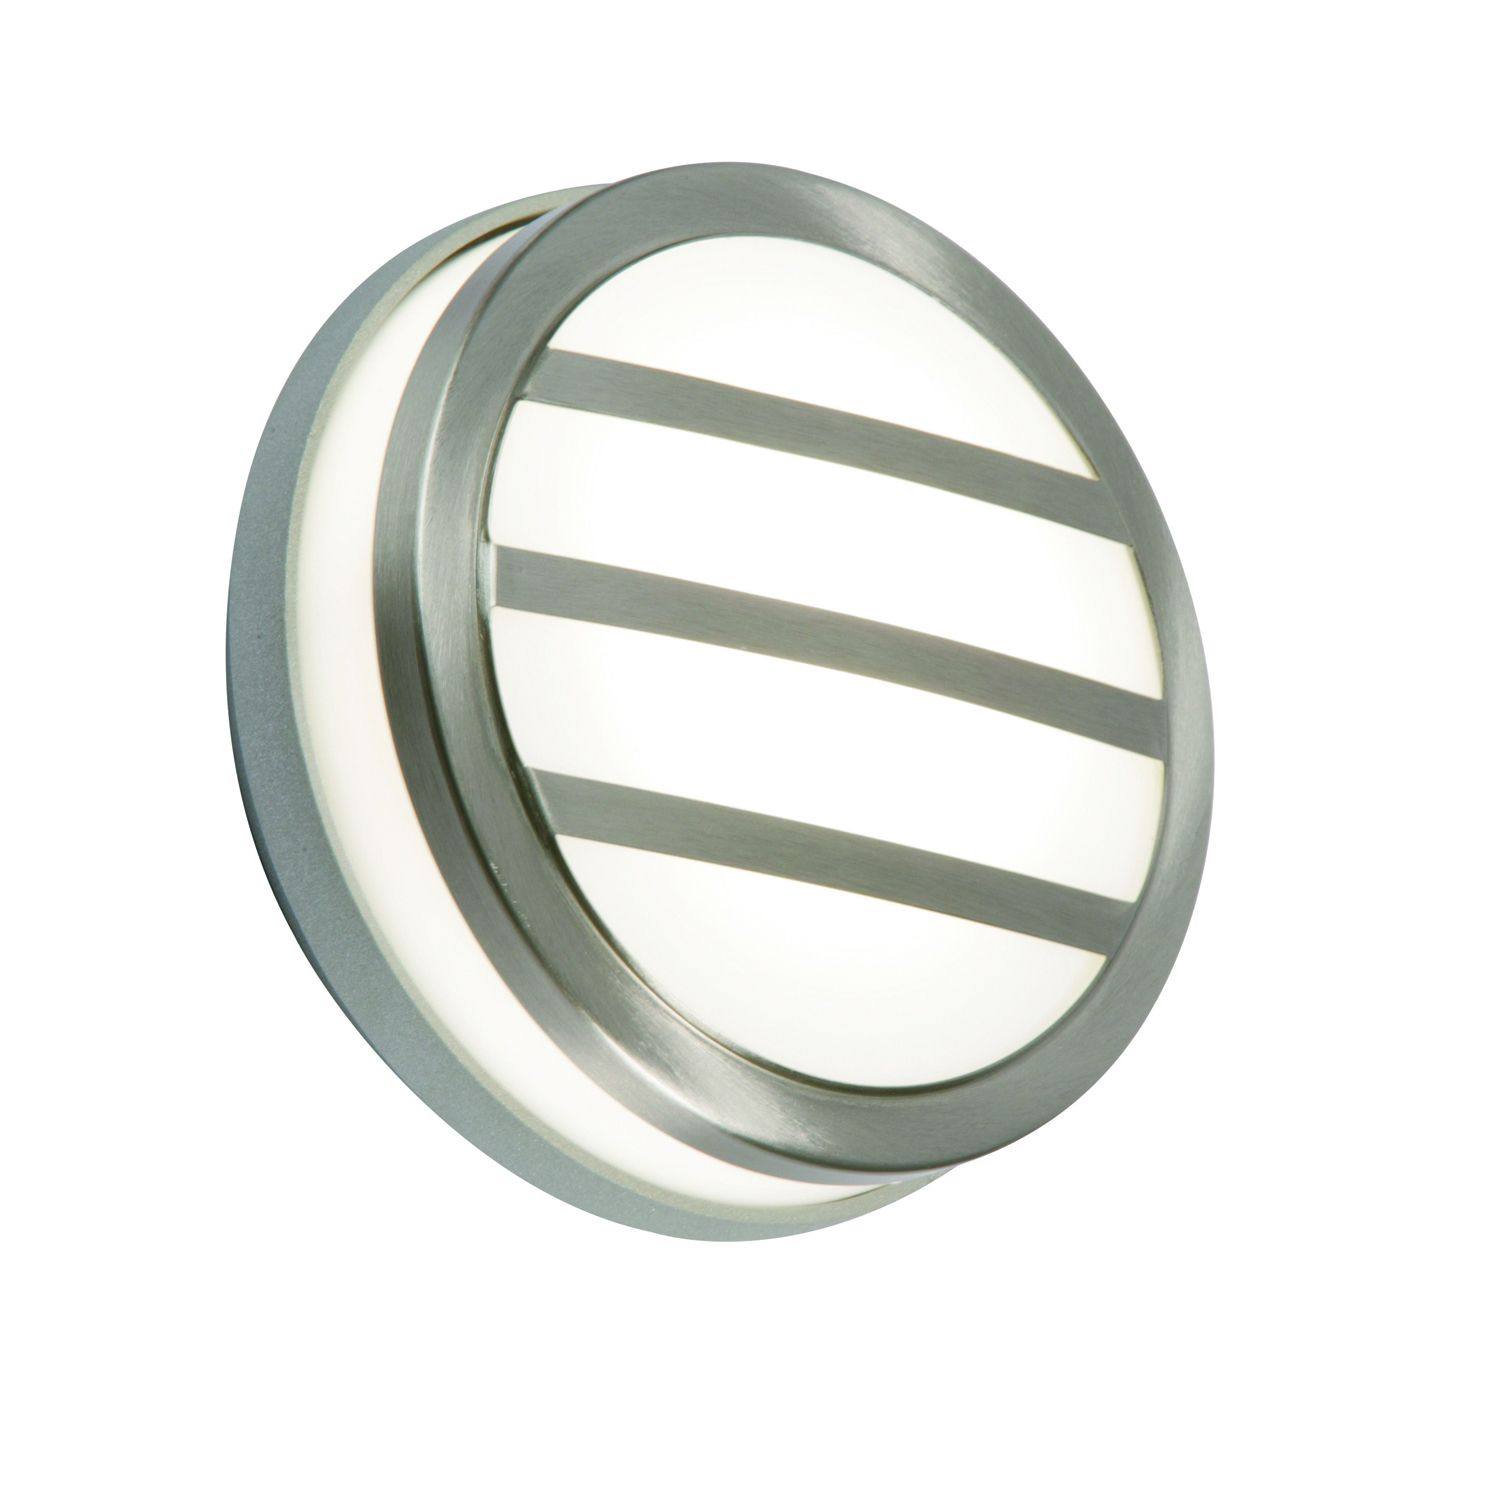 Saxby lighting halo grill ip44 flush outdoor wall light next day saxby lighting halo grill ip44 flush outdoor wall light next day delivery saxby lighting halo aloadofball Images